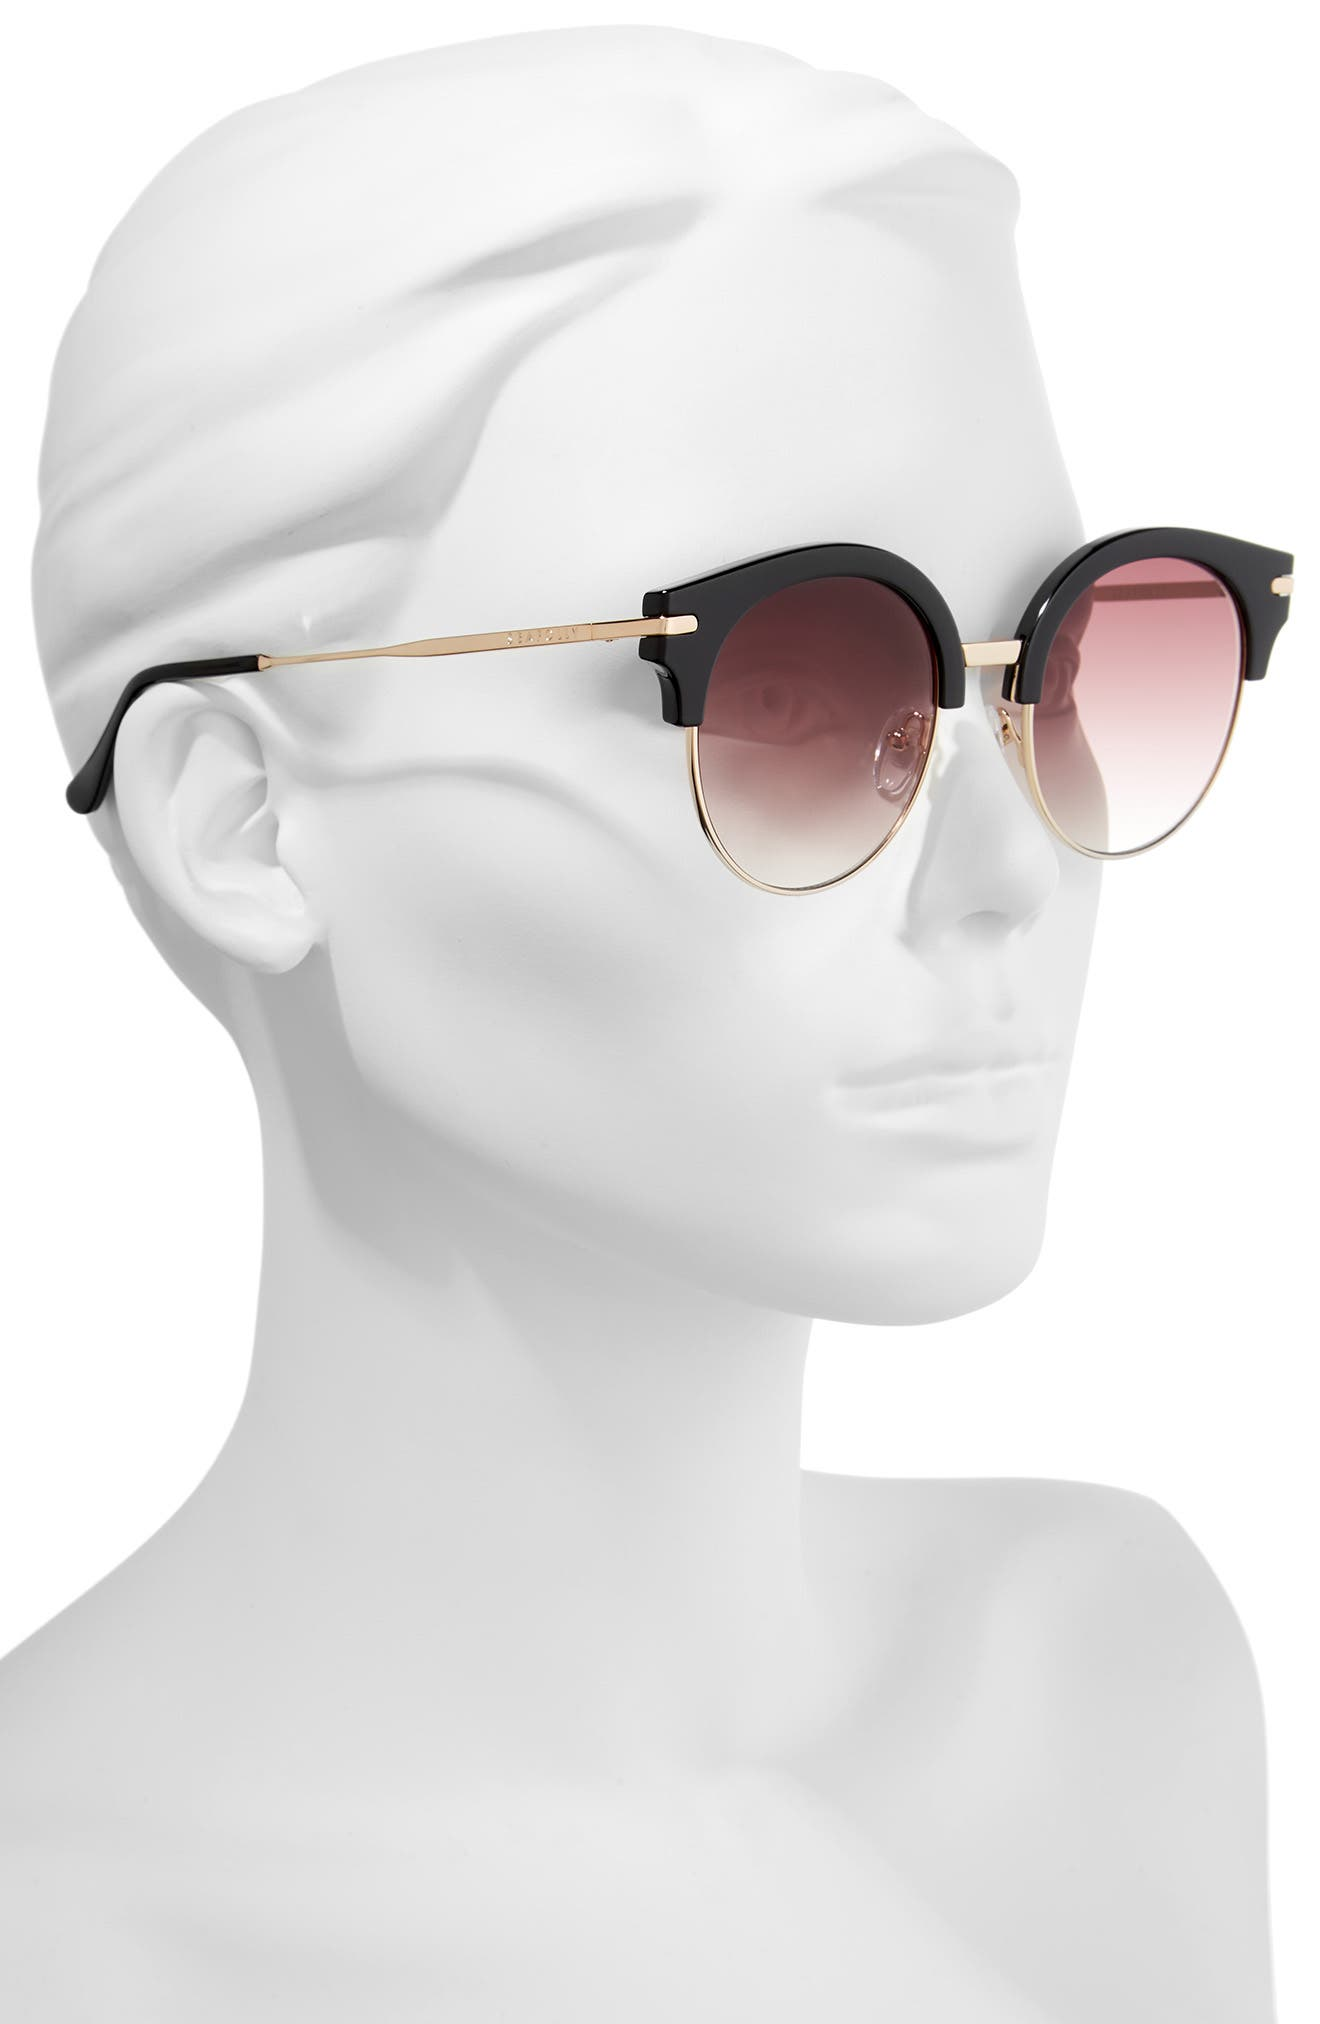 San Diego 52mm Cat Eye Sunglasses,                             Alternate thumbnail 2, color,                             001